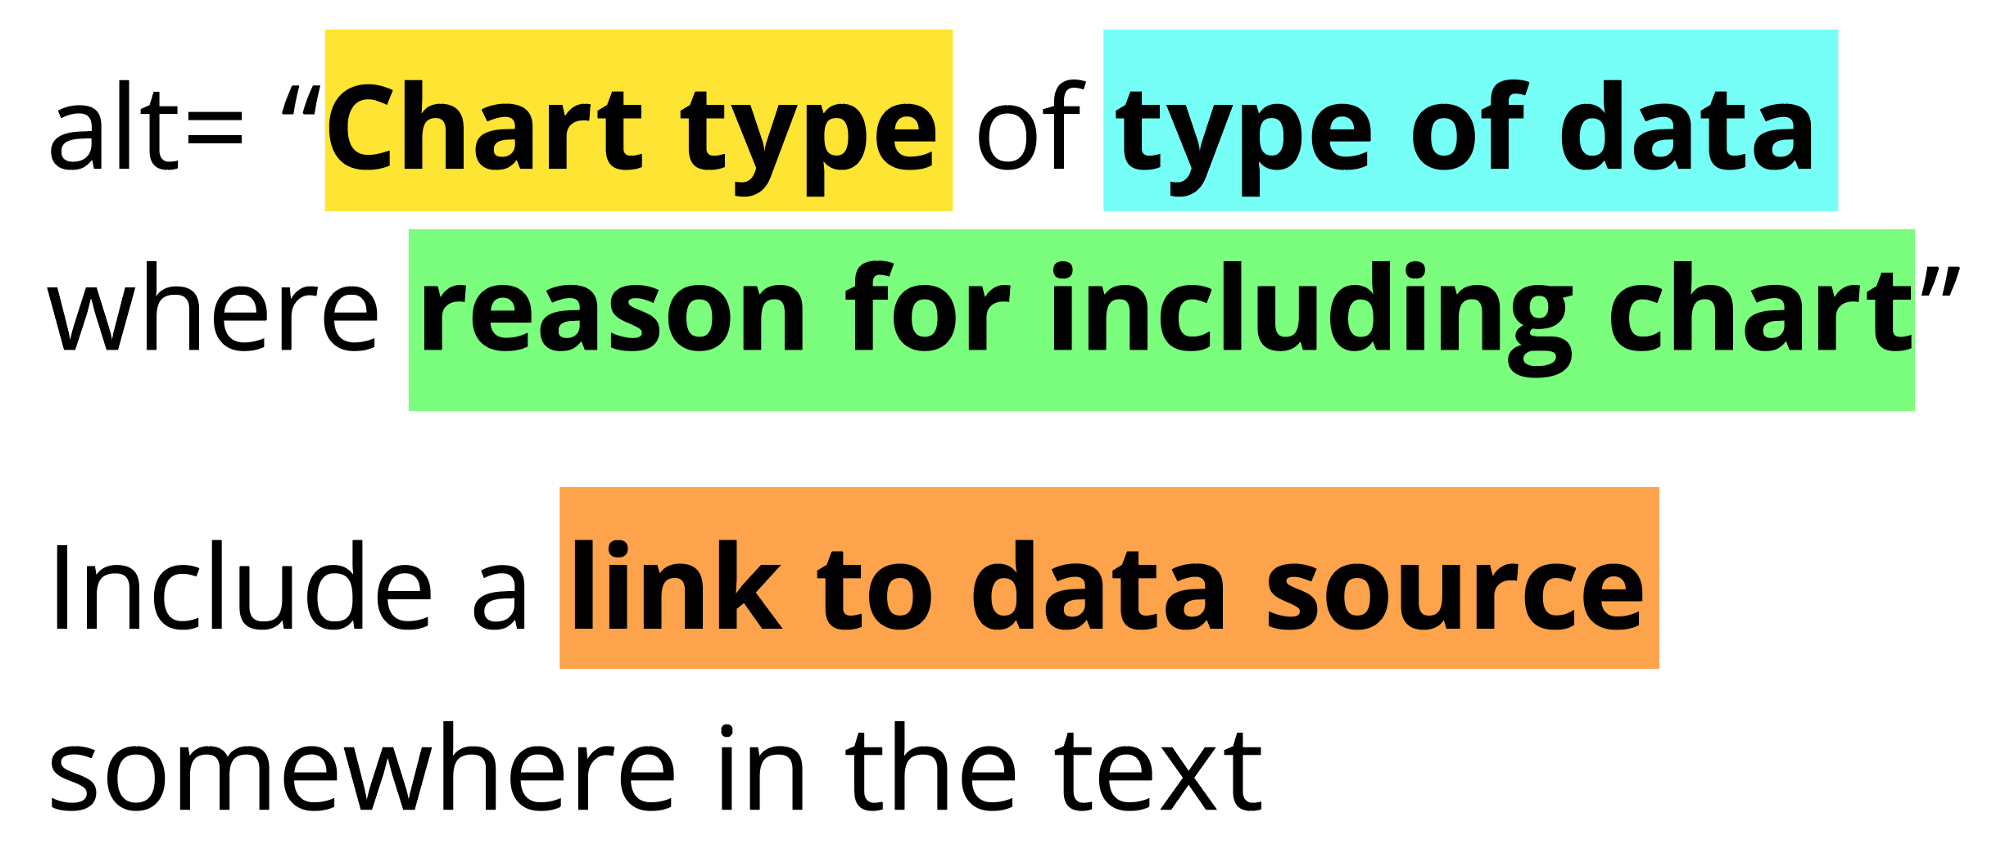 """alt= """"Chart type of type of data where reason for including chart"""" Include a link to data source somewhere in the text"""